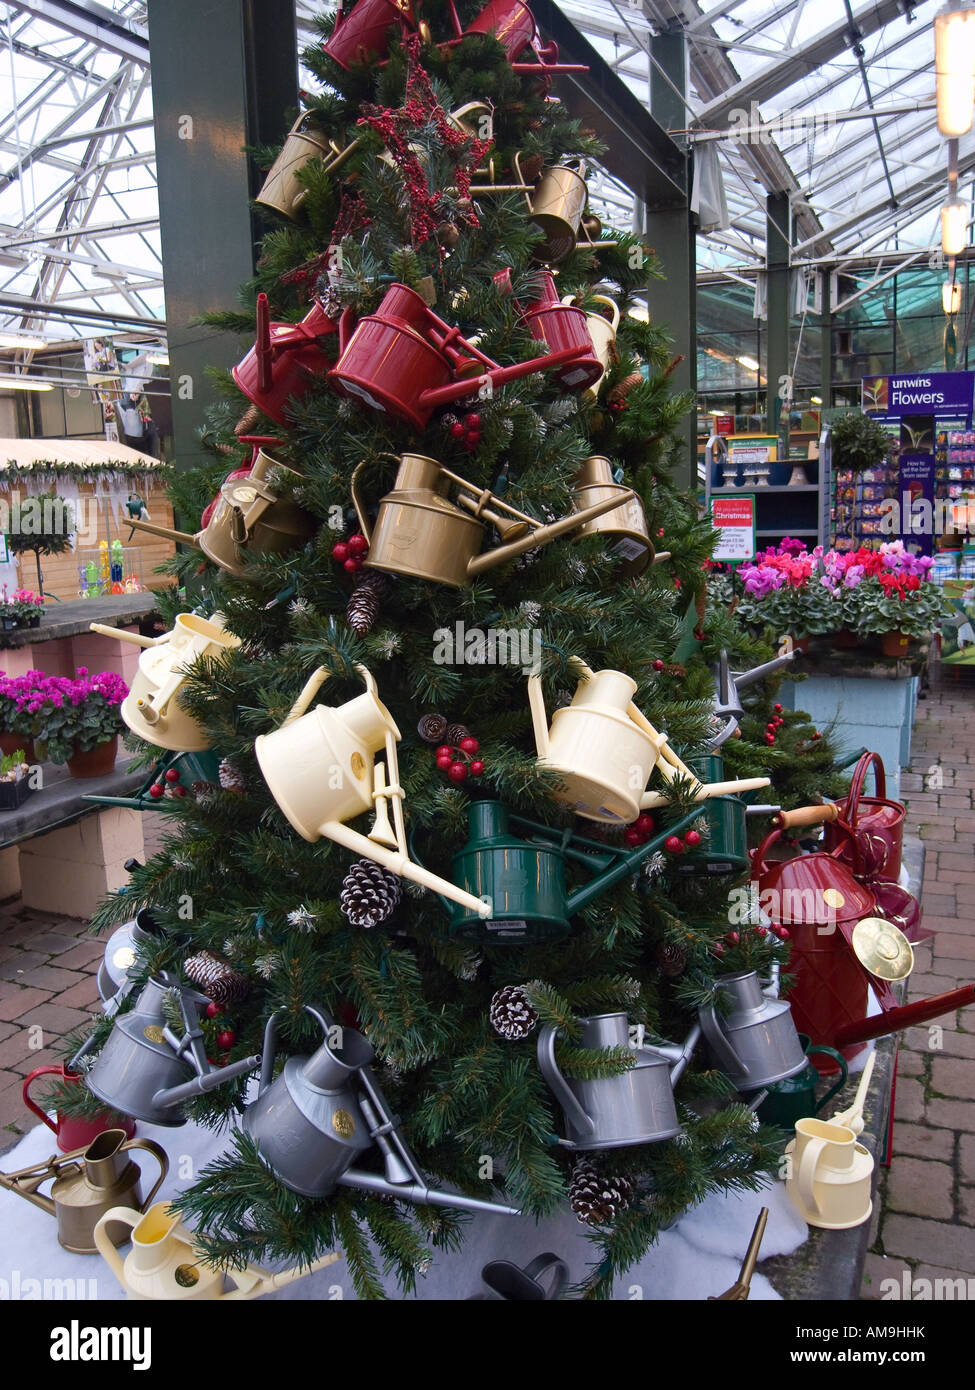 Unusual Christmas Tree With Colourful Watering Cans Used As Decorations